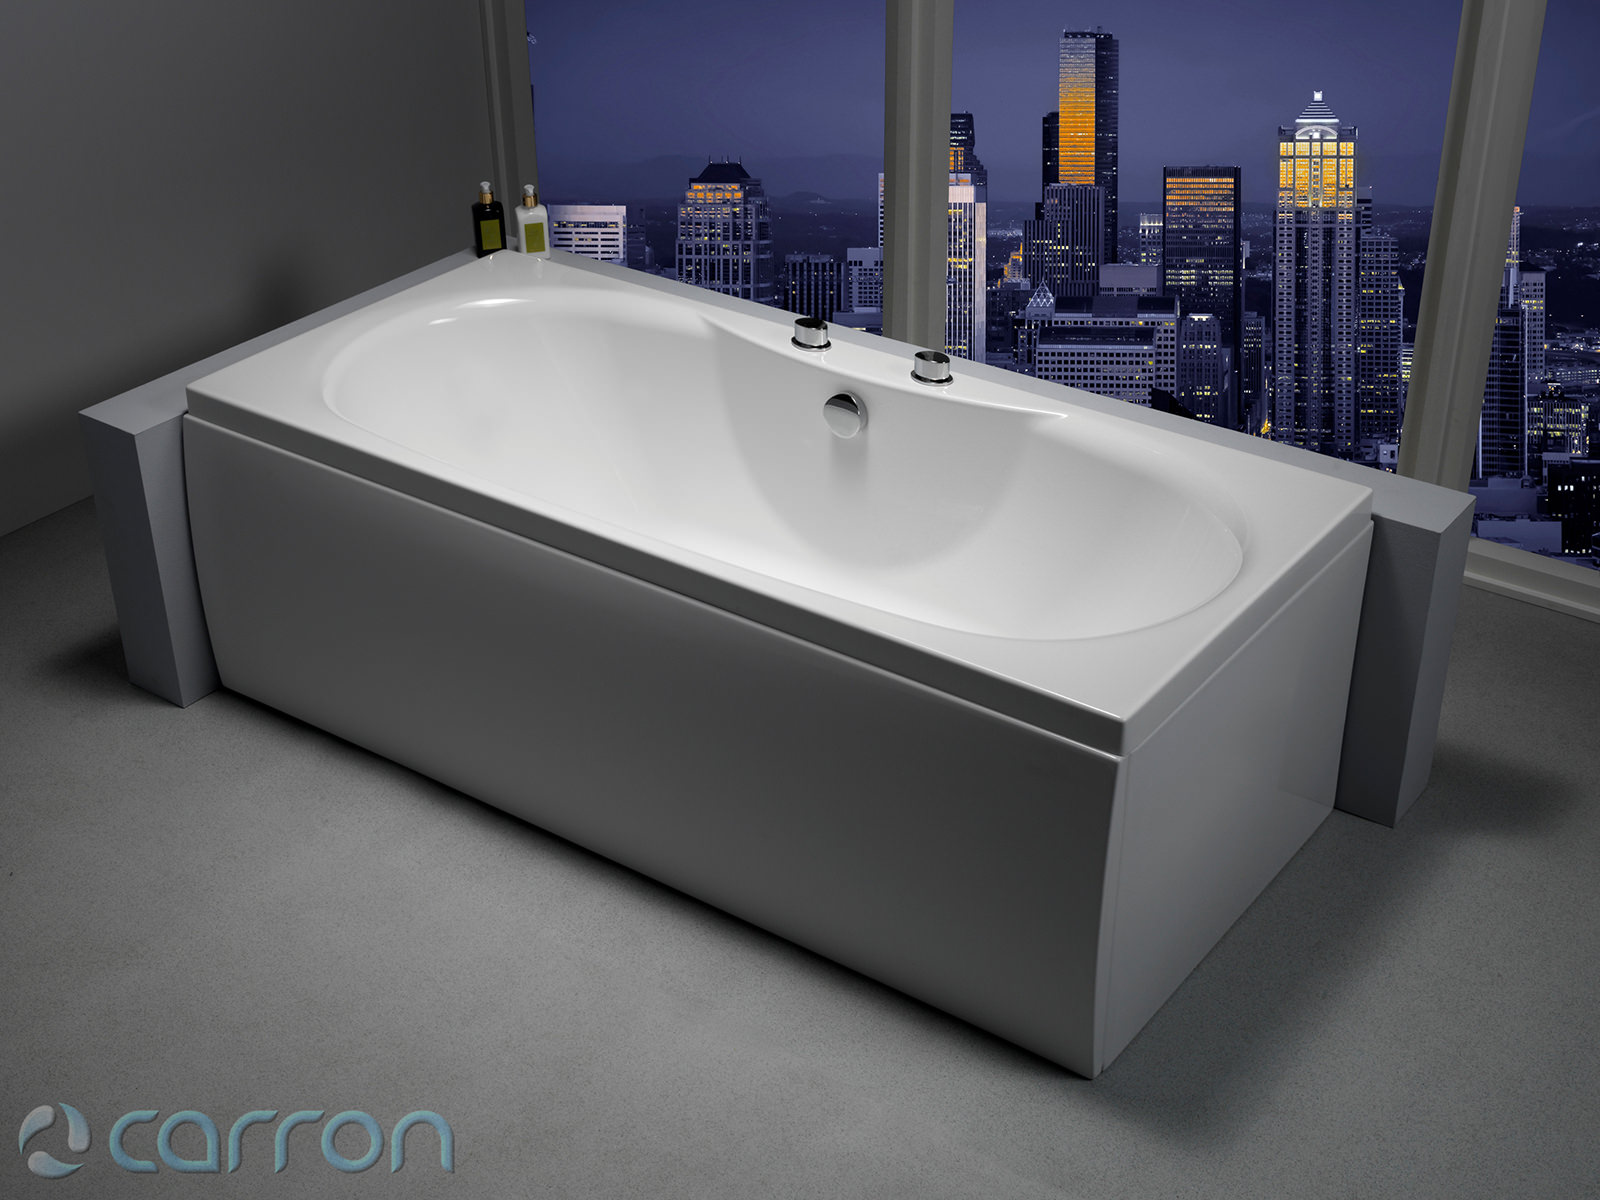 Carron equation double ended 5mm acrylic bath 1800 x 800mm for Bath 1800